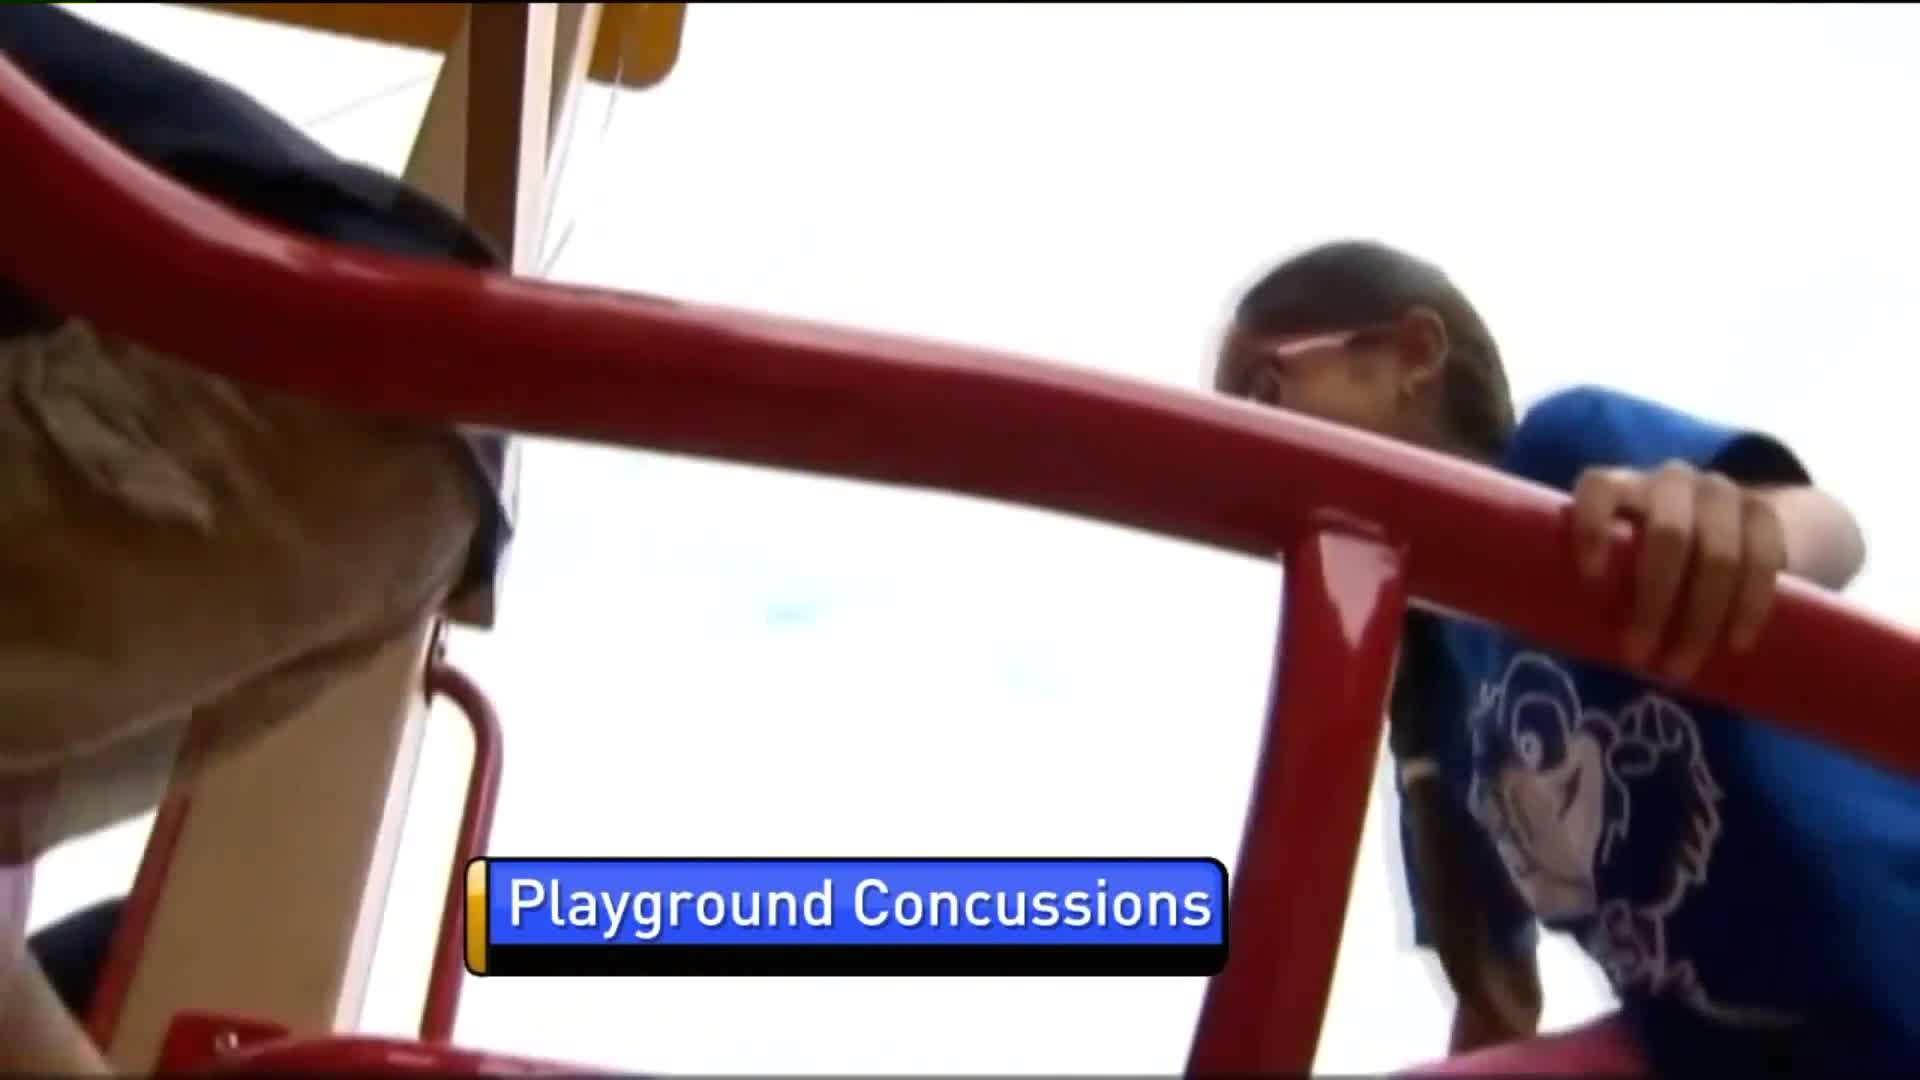 New Study Shows Playground Concussions are on the Rise